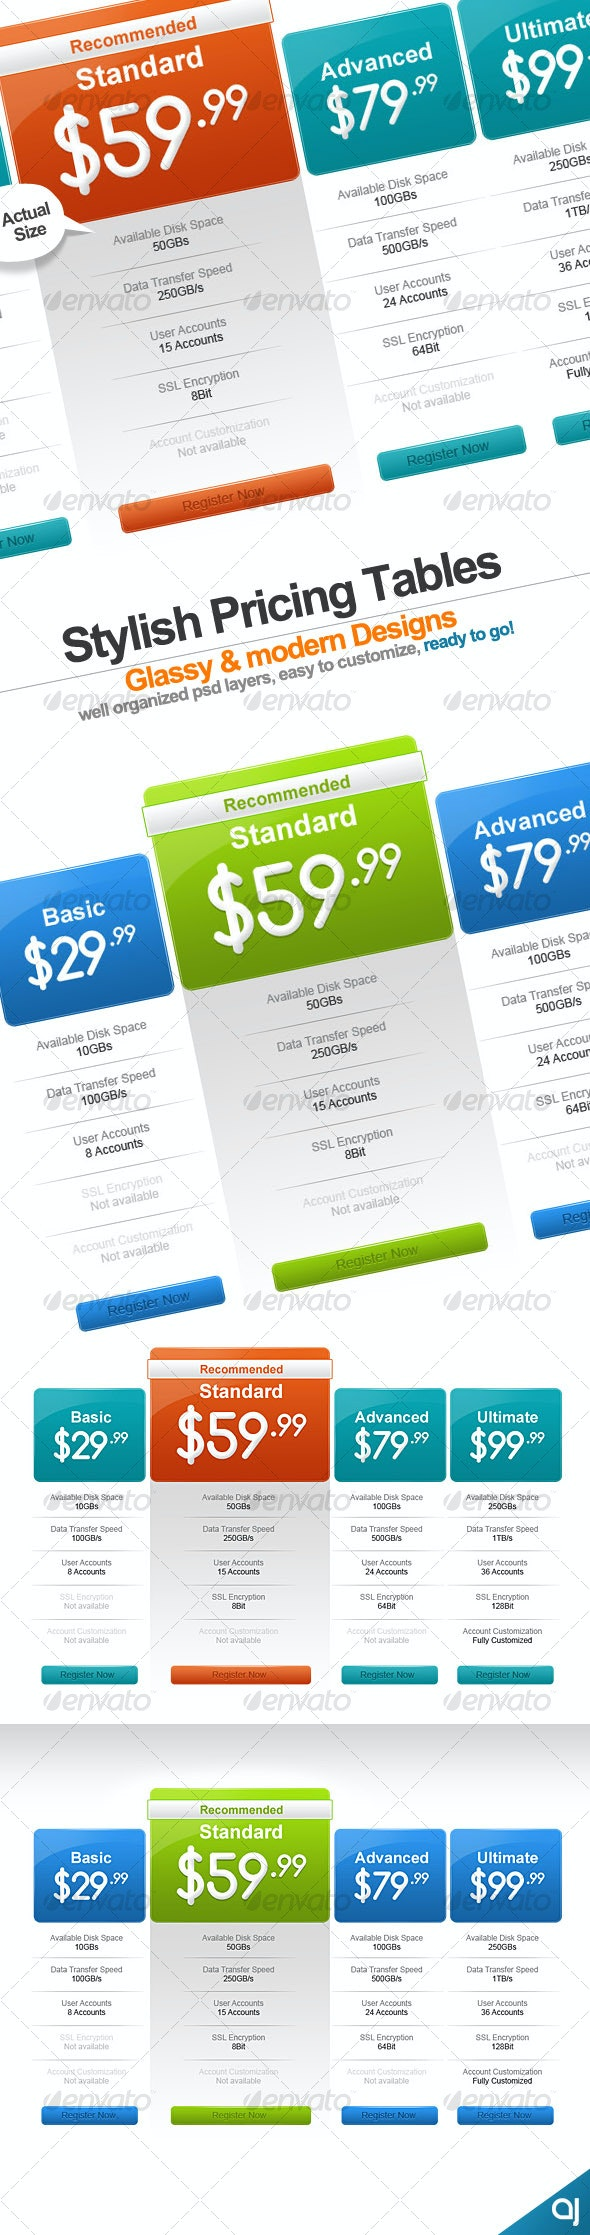 Stylish 2 pricing table designs - Web Elements